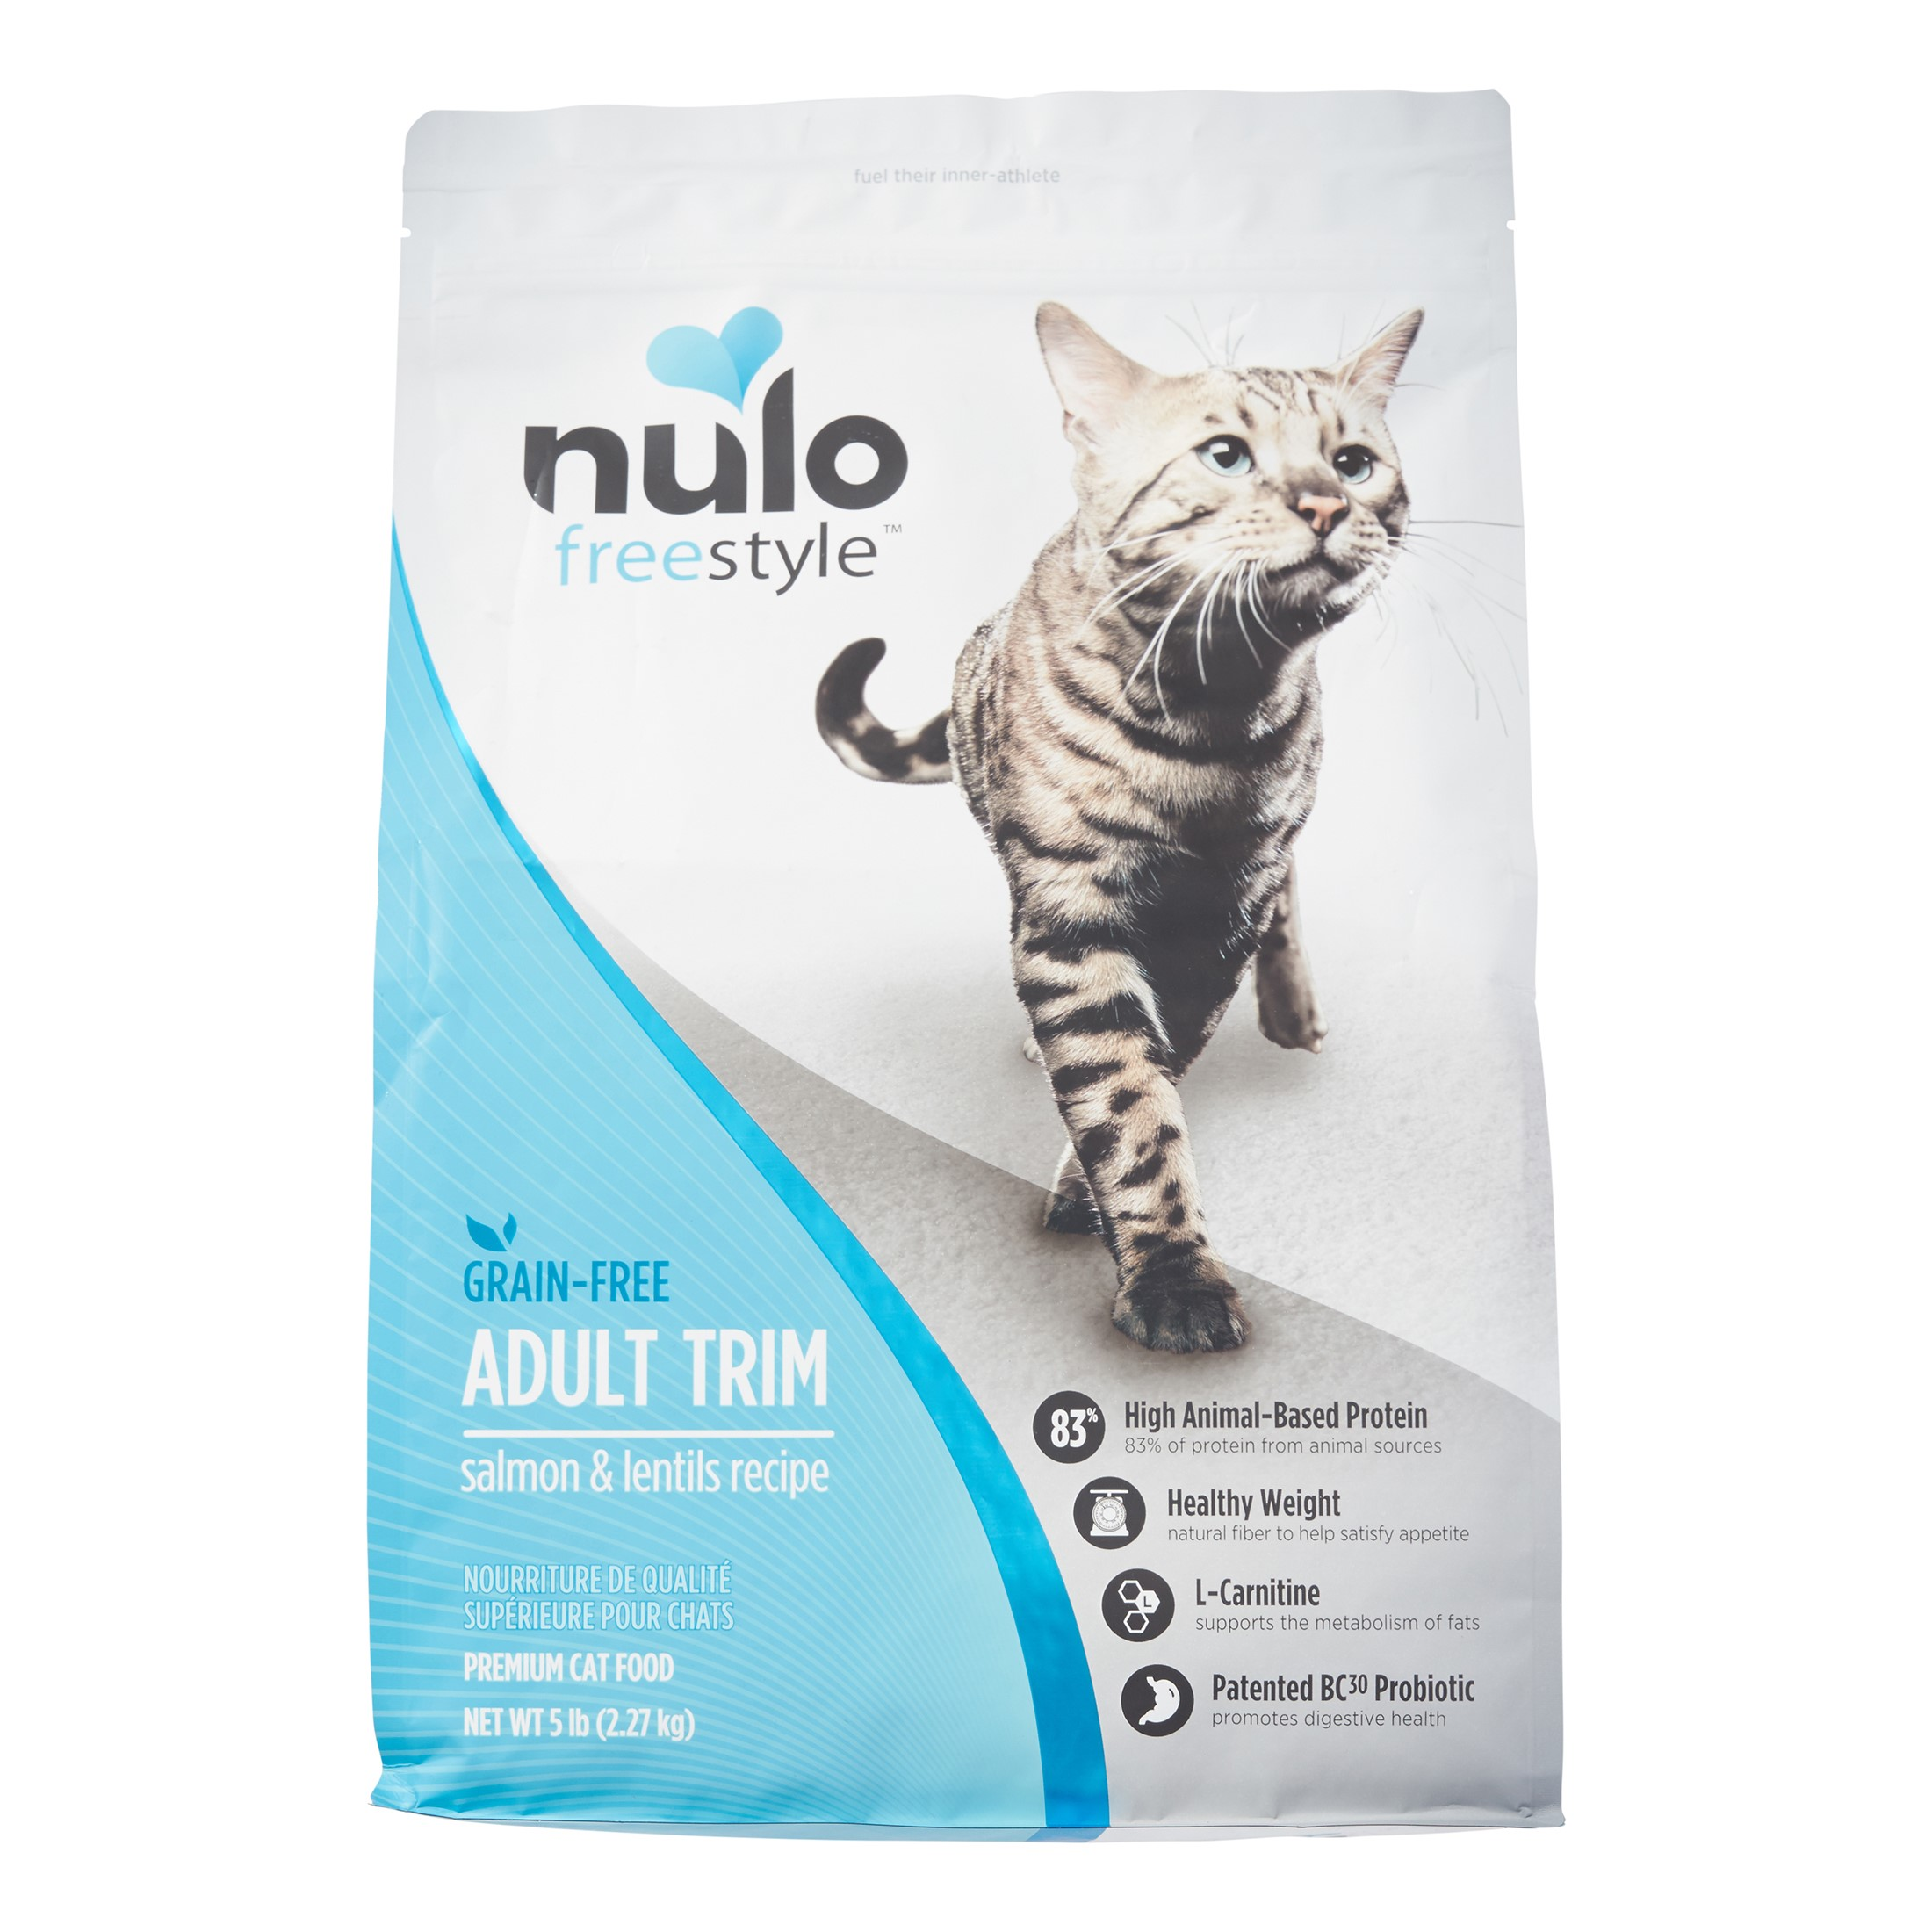 Nulo Freestyle Grain-Free Adult Trim Salmon & Lentils Dry Cat Food, 5 Lb